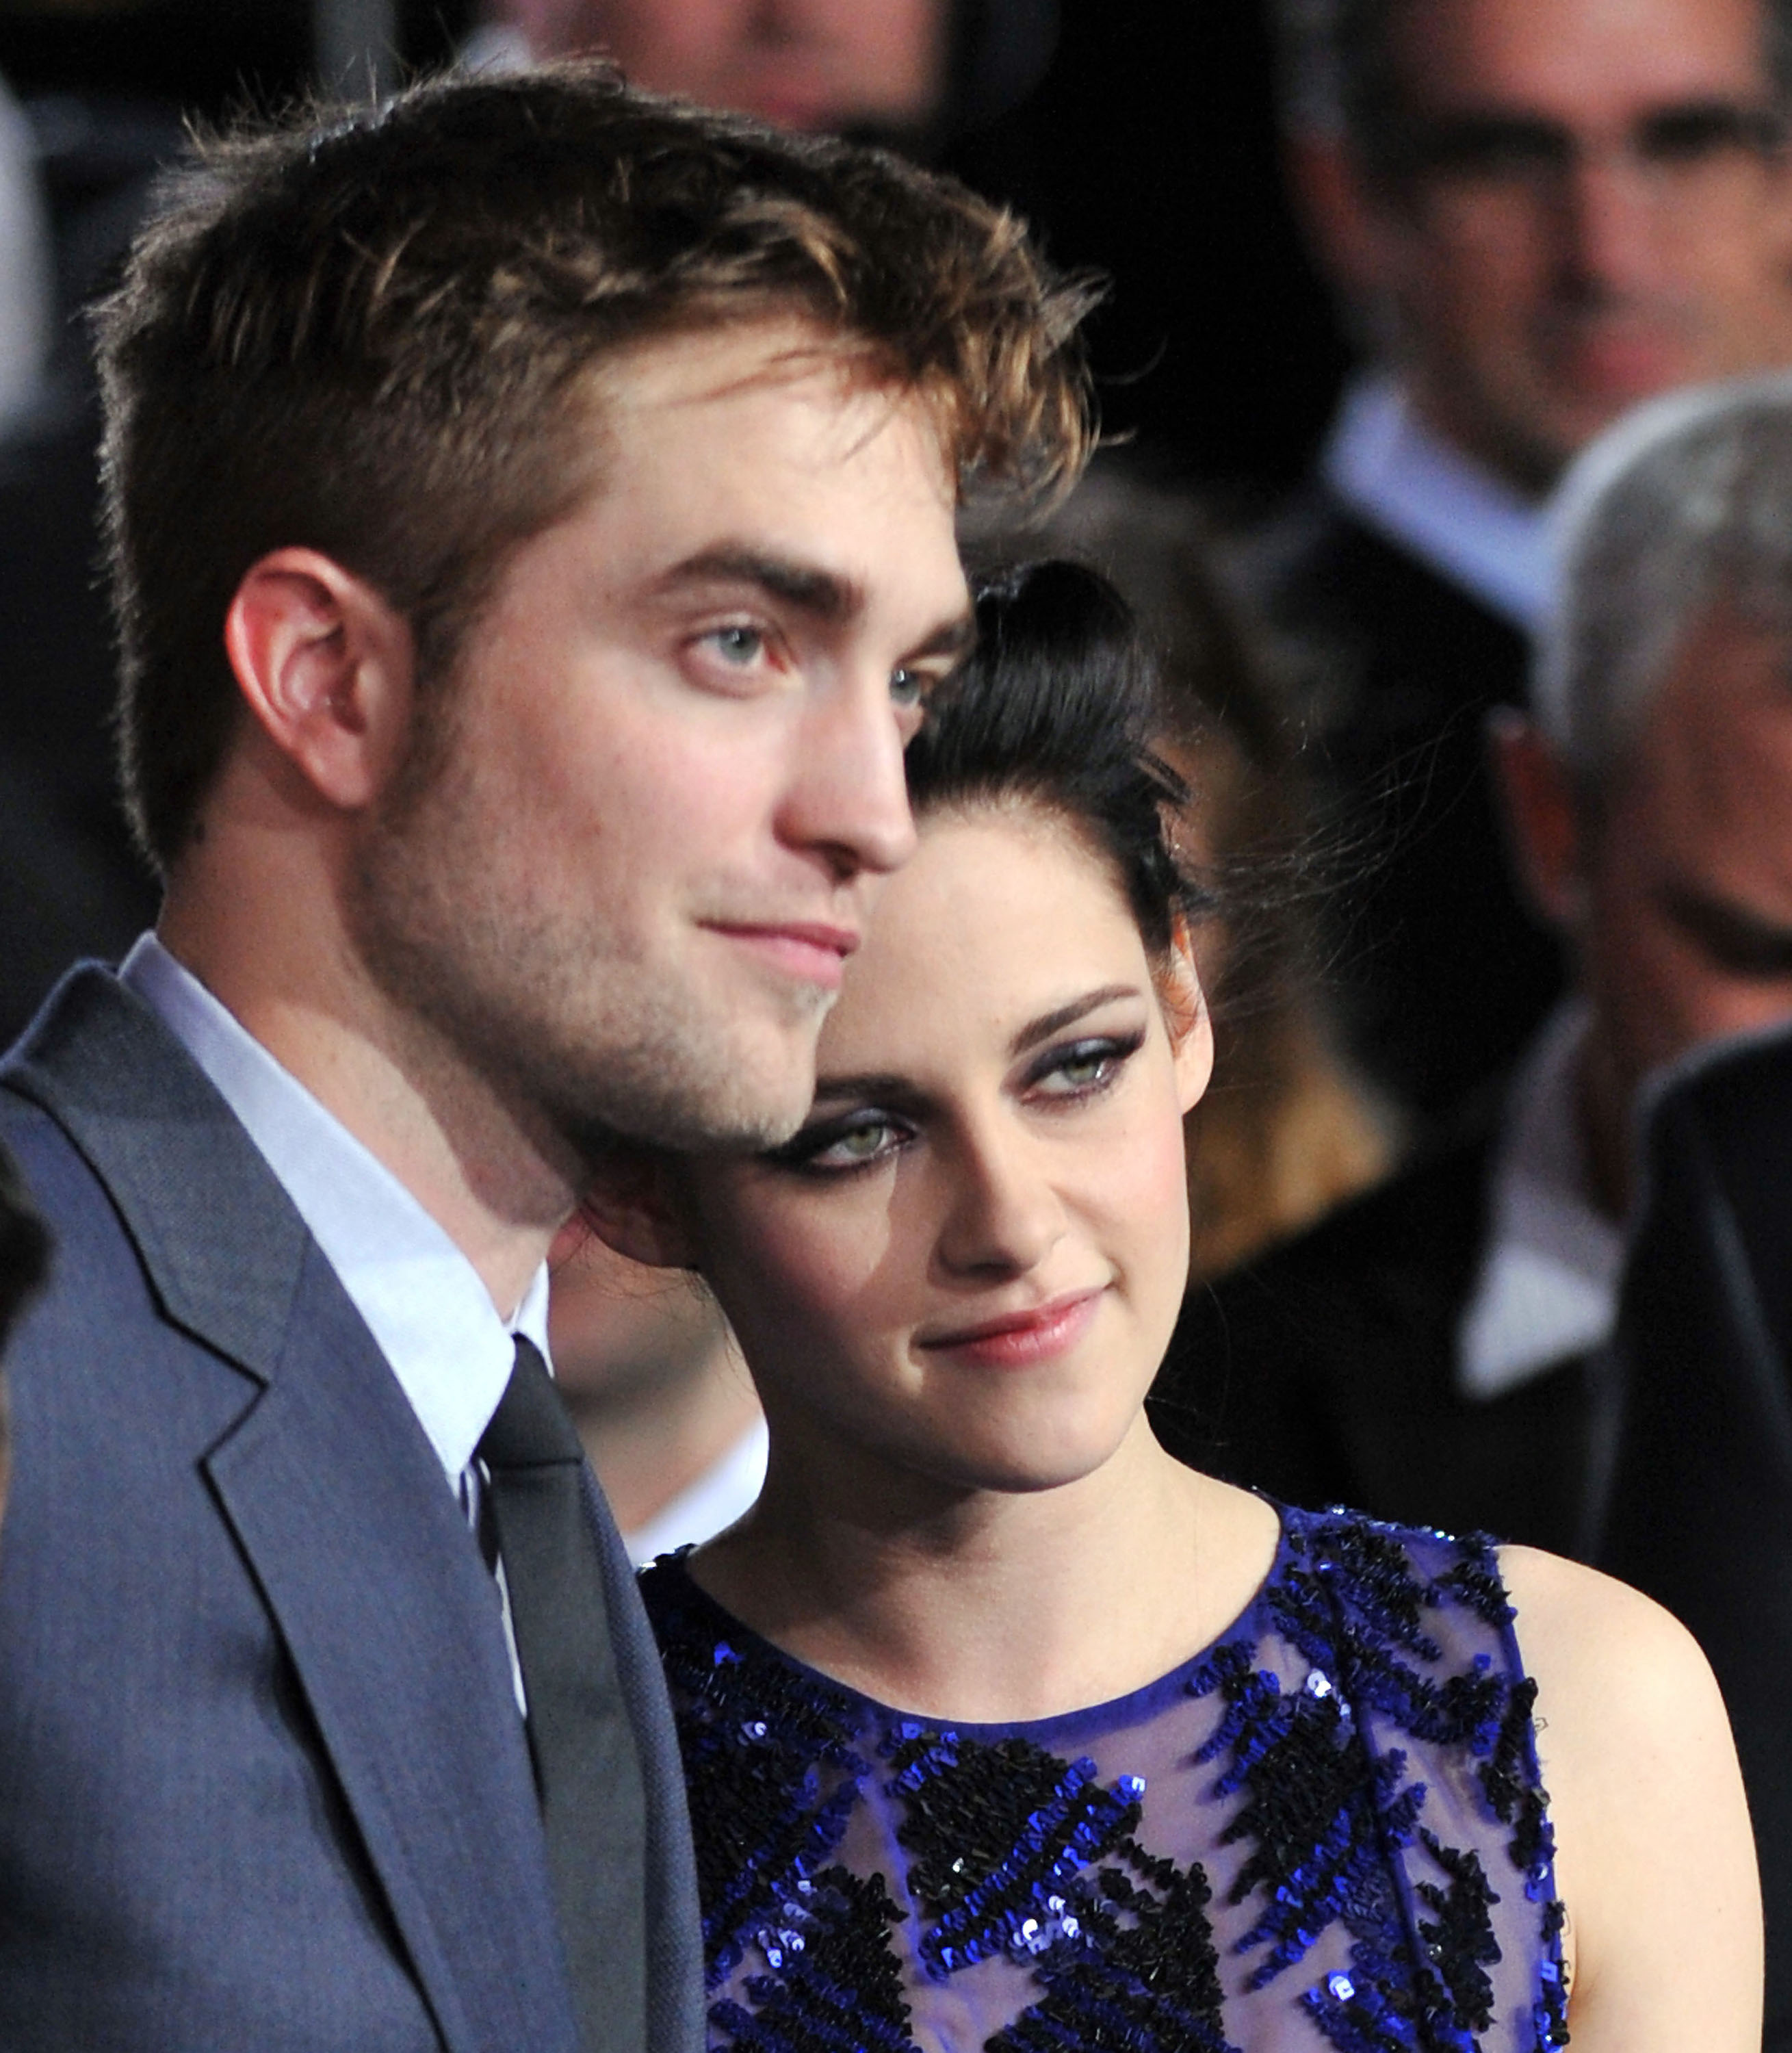 Robert Pattinson and Kristen Stewart gave their shy sexy smiles for photographers.